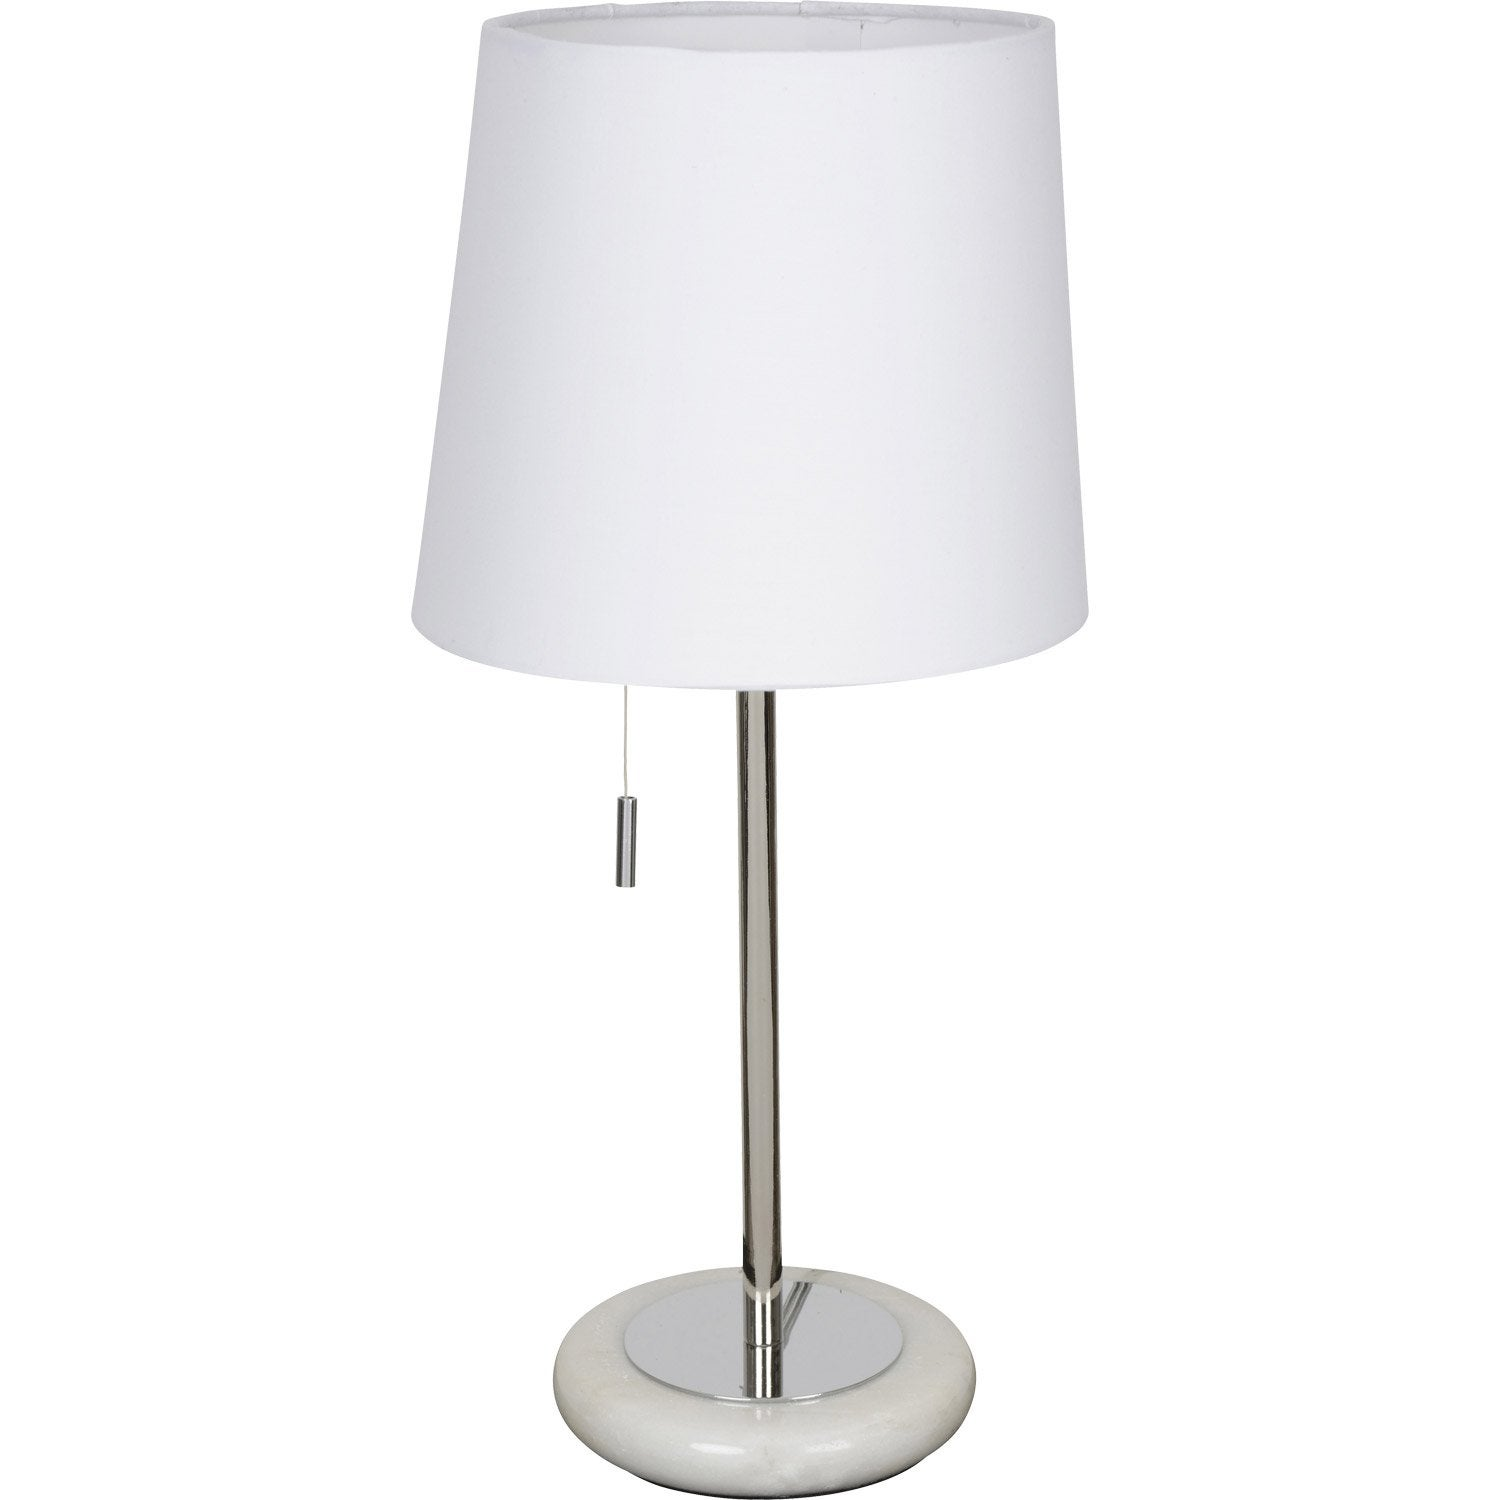 finest lampe e click corep coton blanc w leroy merlin for lampe de chevet chez leroy with lampe. Black Bedroom Furniture Sets. Home Design Ideas